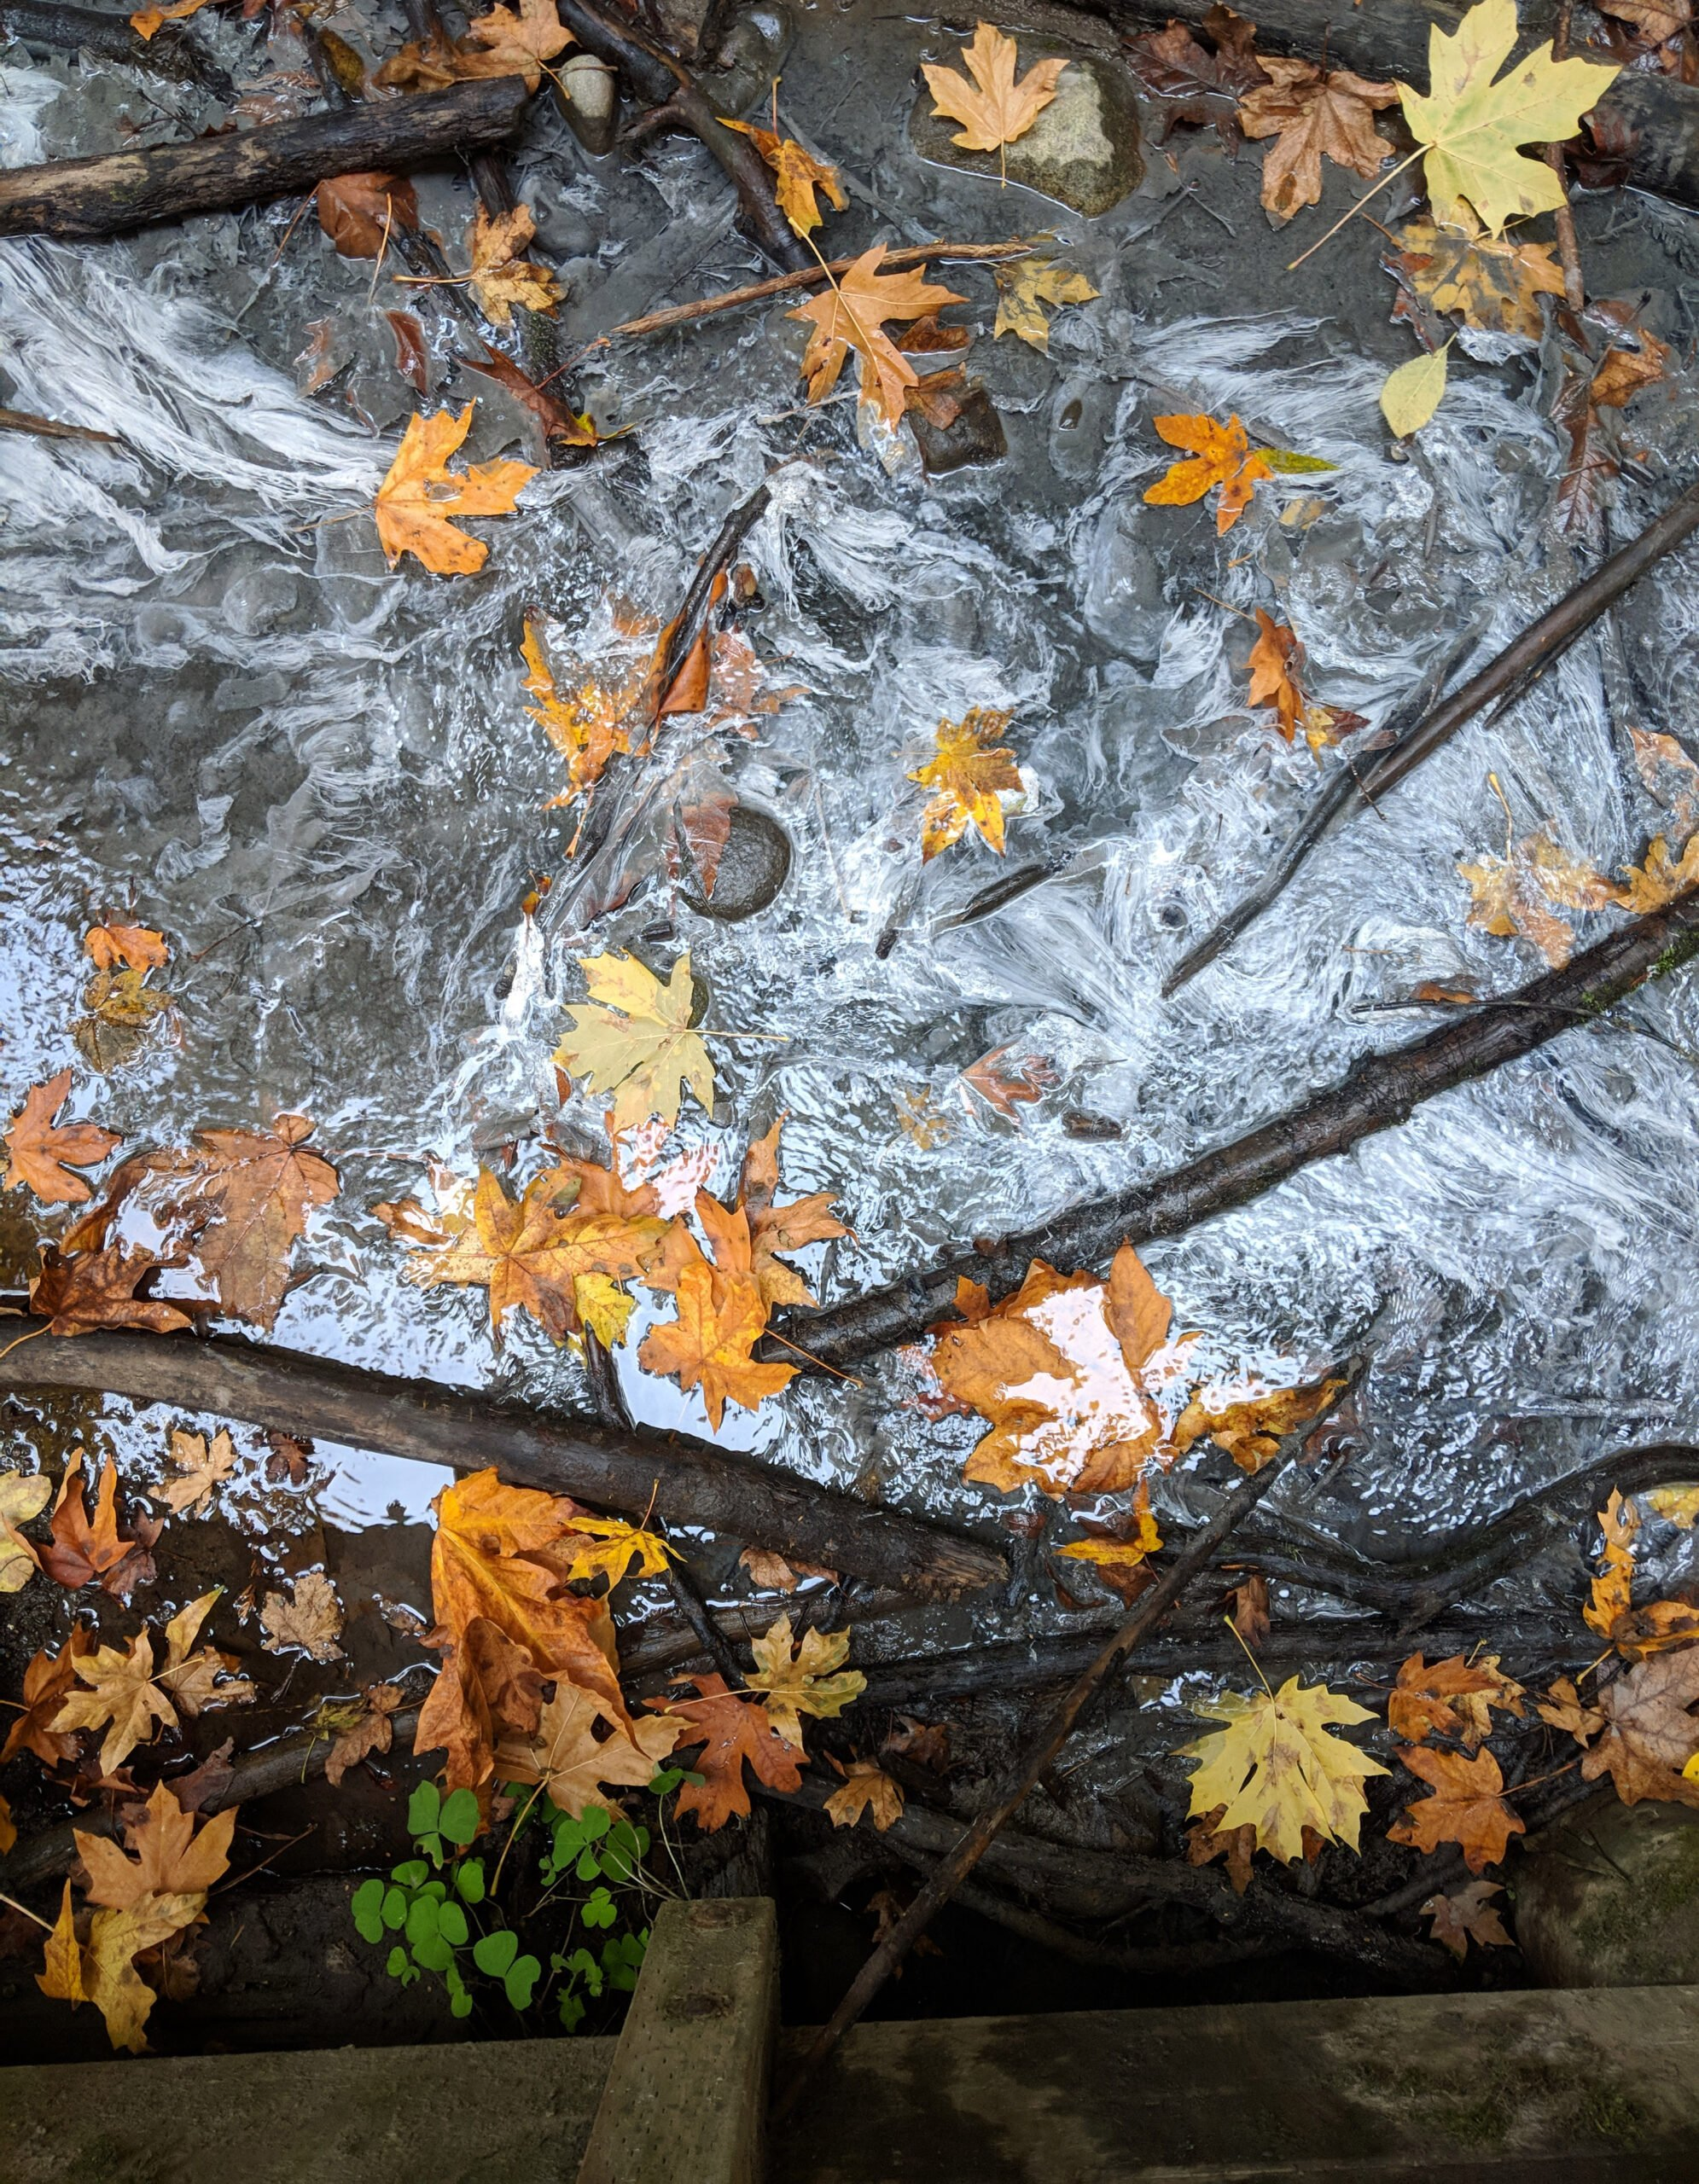 Water rushing under a bridge at the state park in washington with autumn leaves in the rapids.